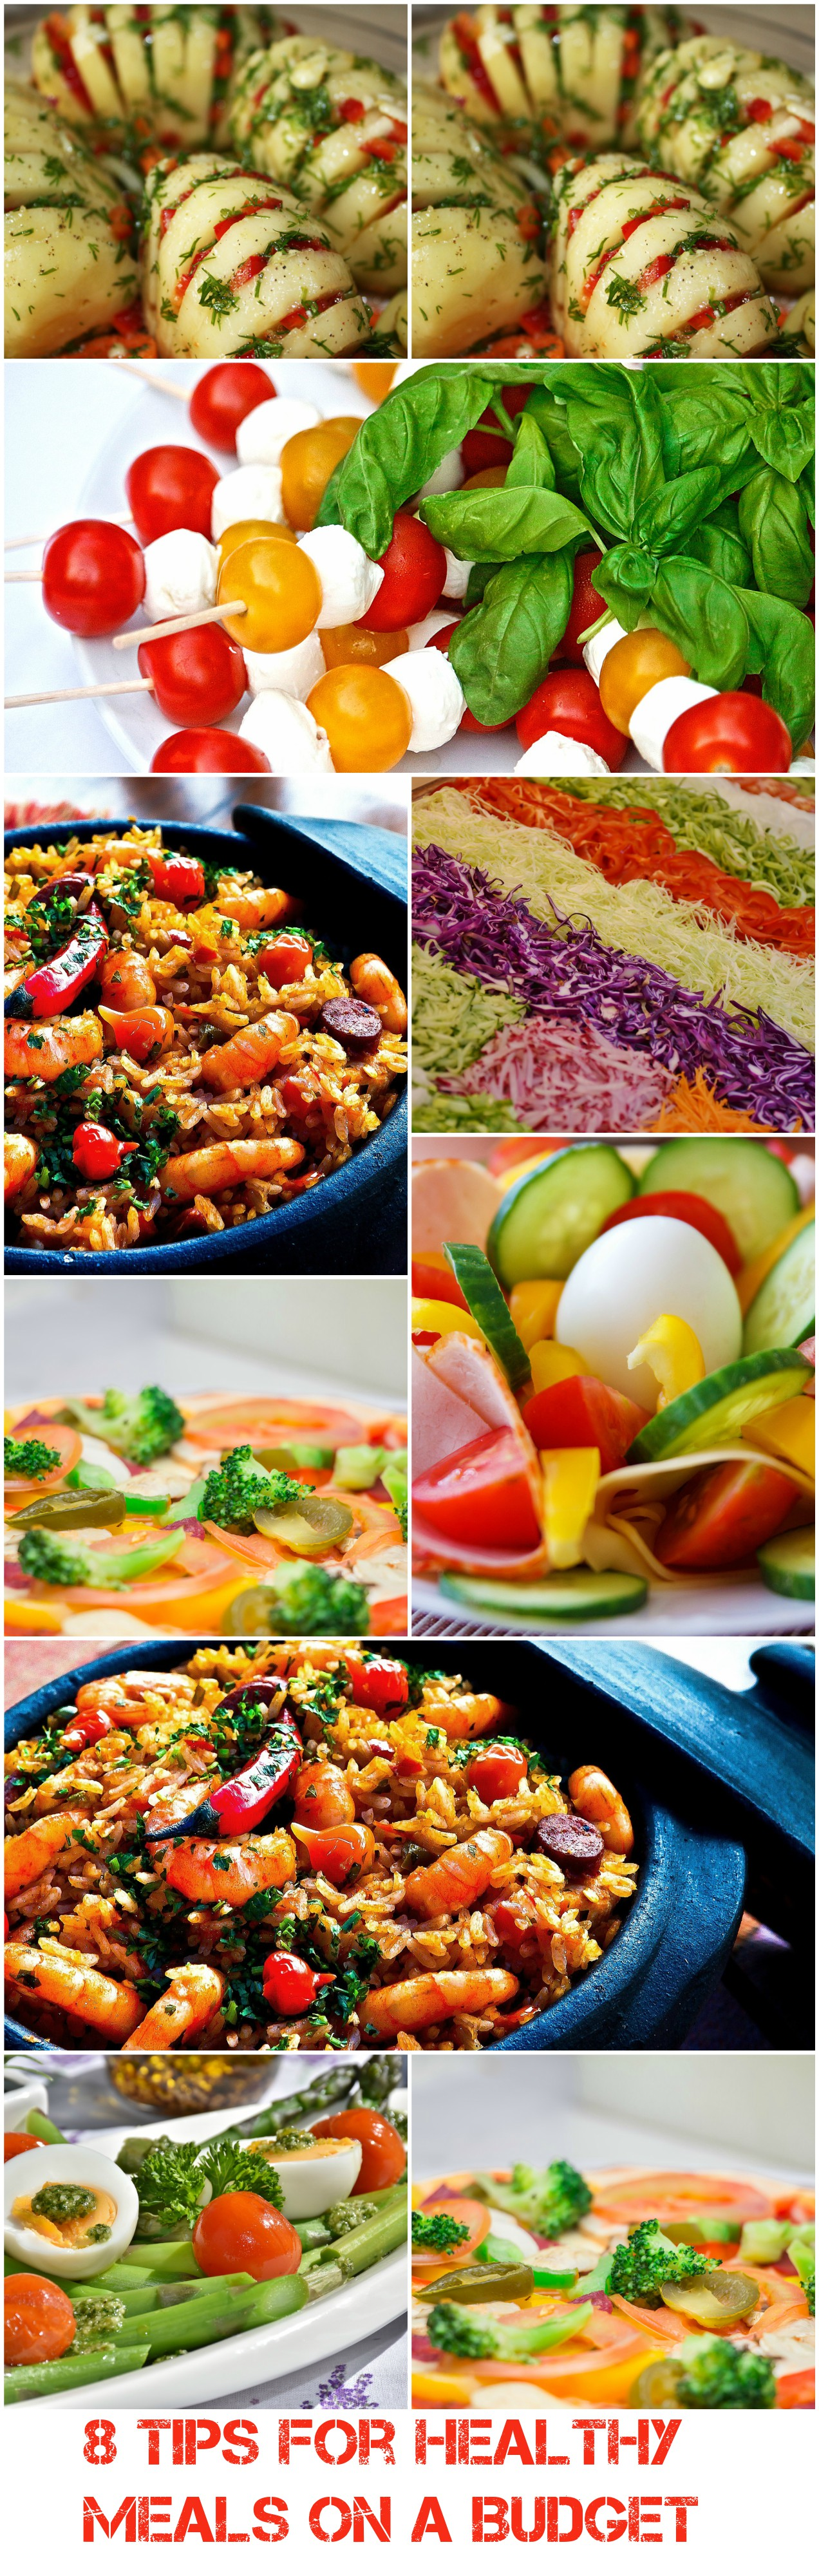 plan-healthy-meals-on-a-budget